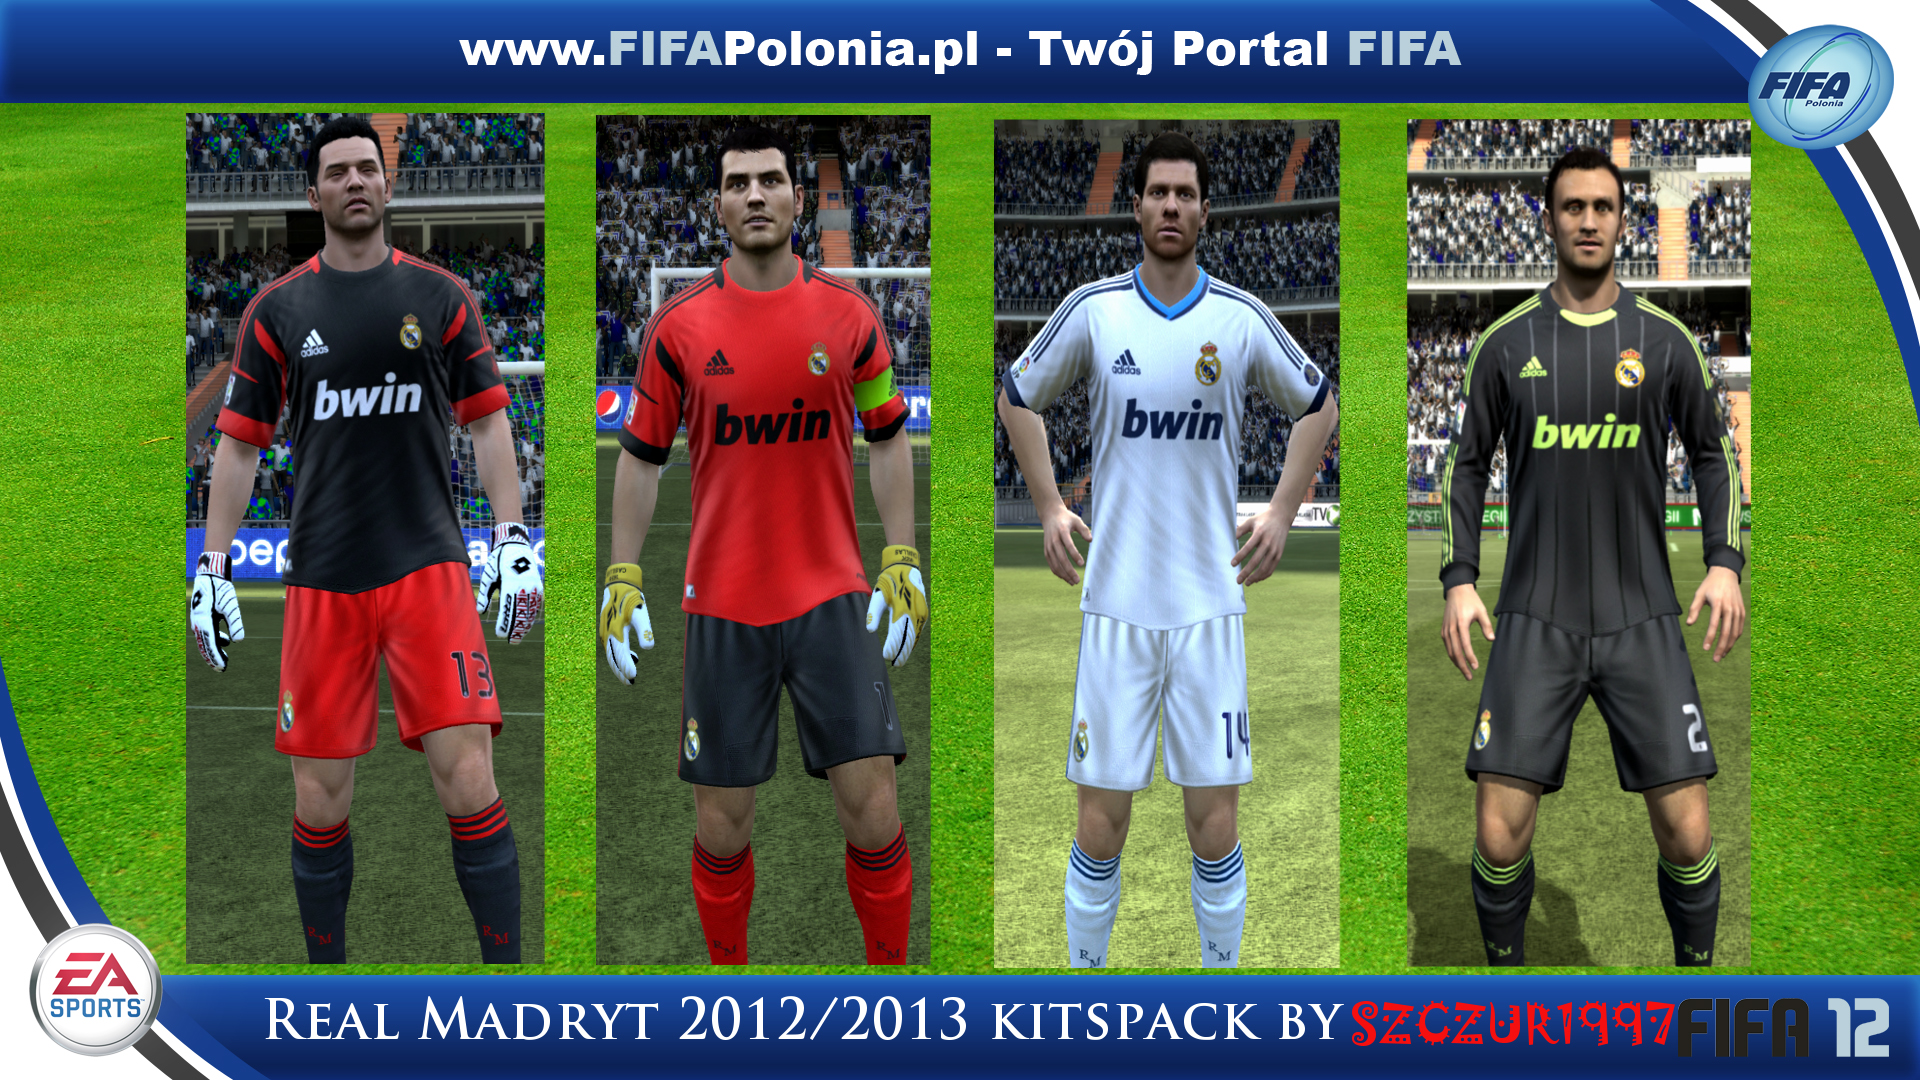 Download: Real Madryt 2012/2013 Kits Pack by Szczur1997